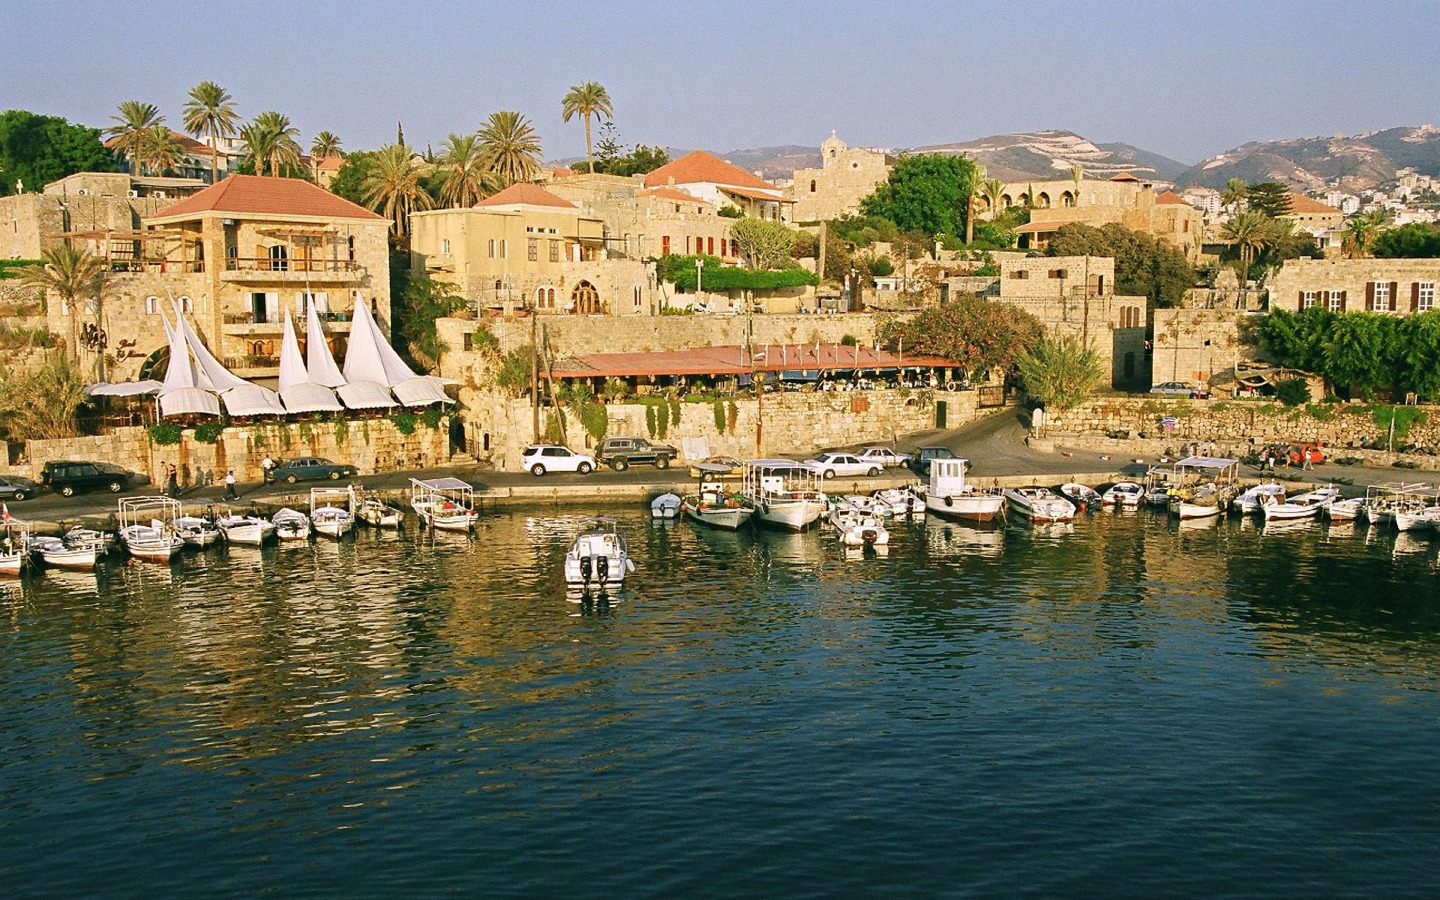 This is Jbeil-Byblos, it's best tourist attraction in Lebanon. Many restaurants there and boats. Cool shops!!